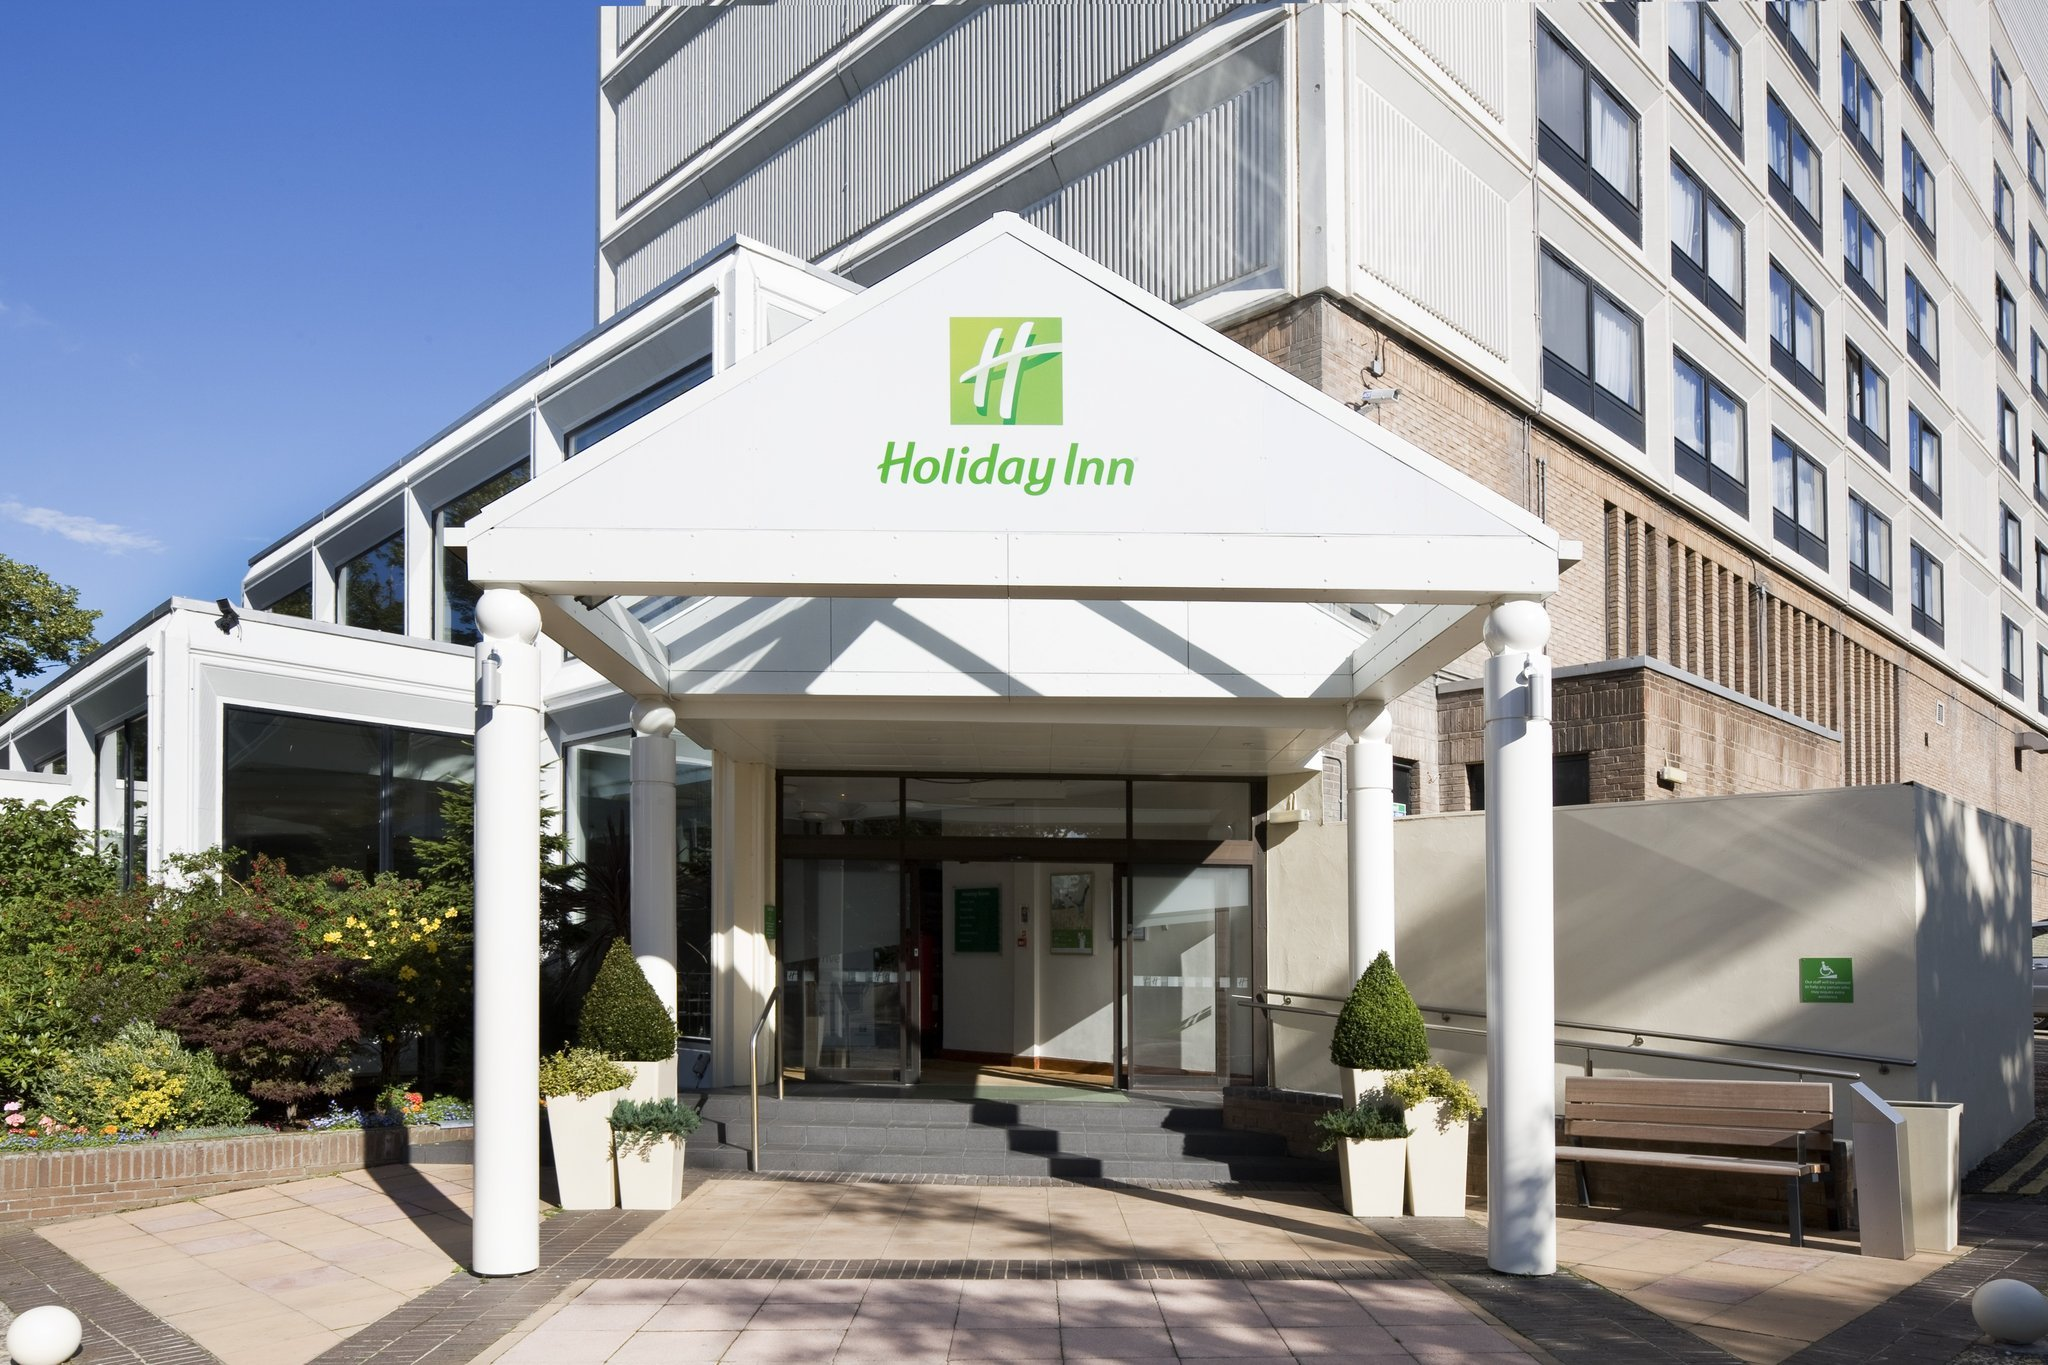 Holiday Inn Edinburgh City - West